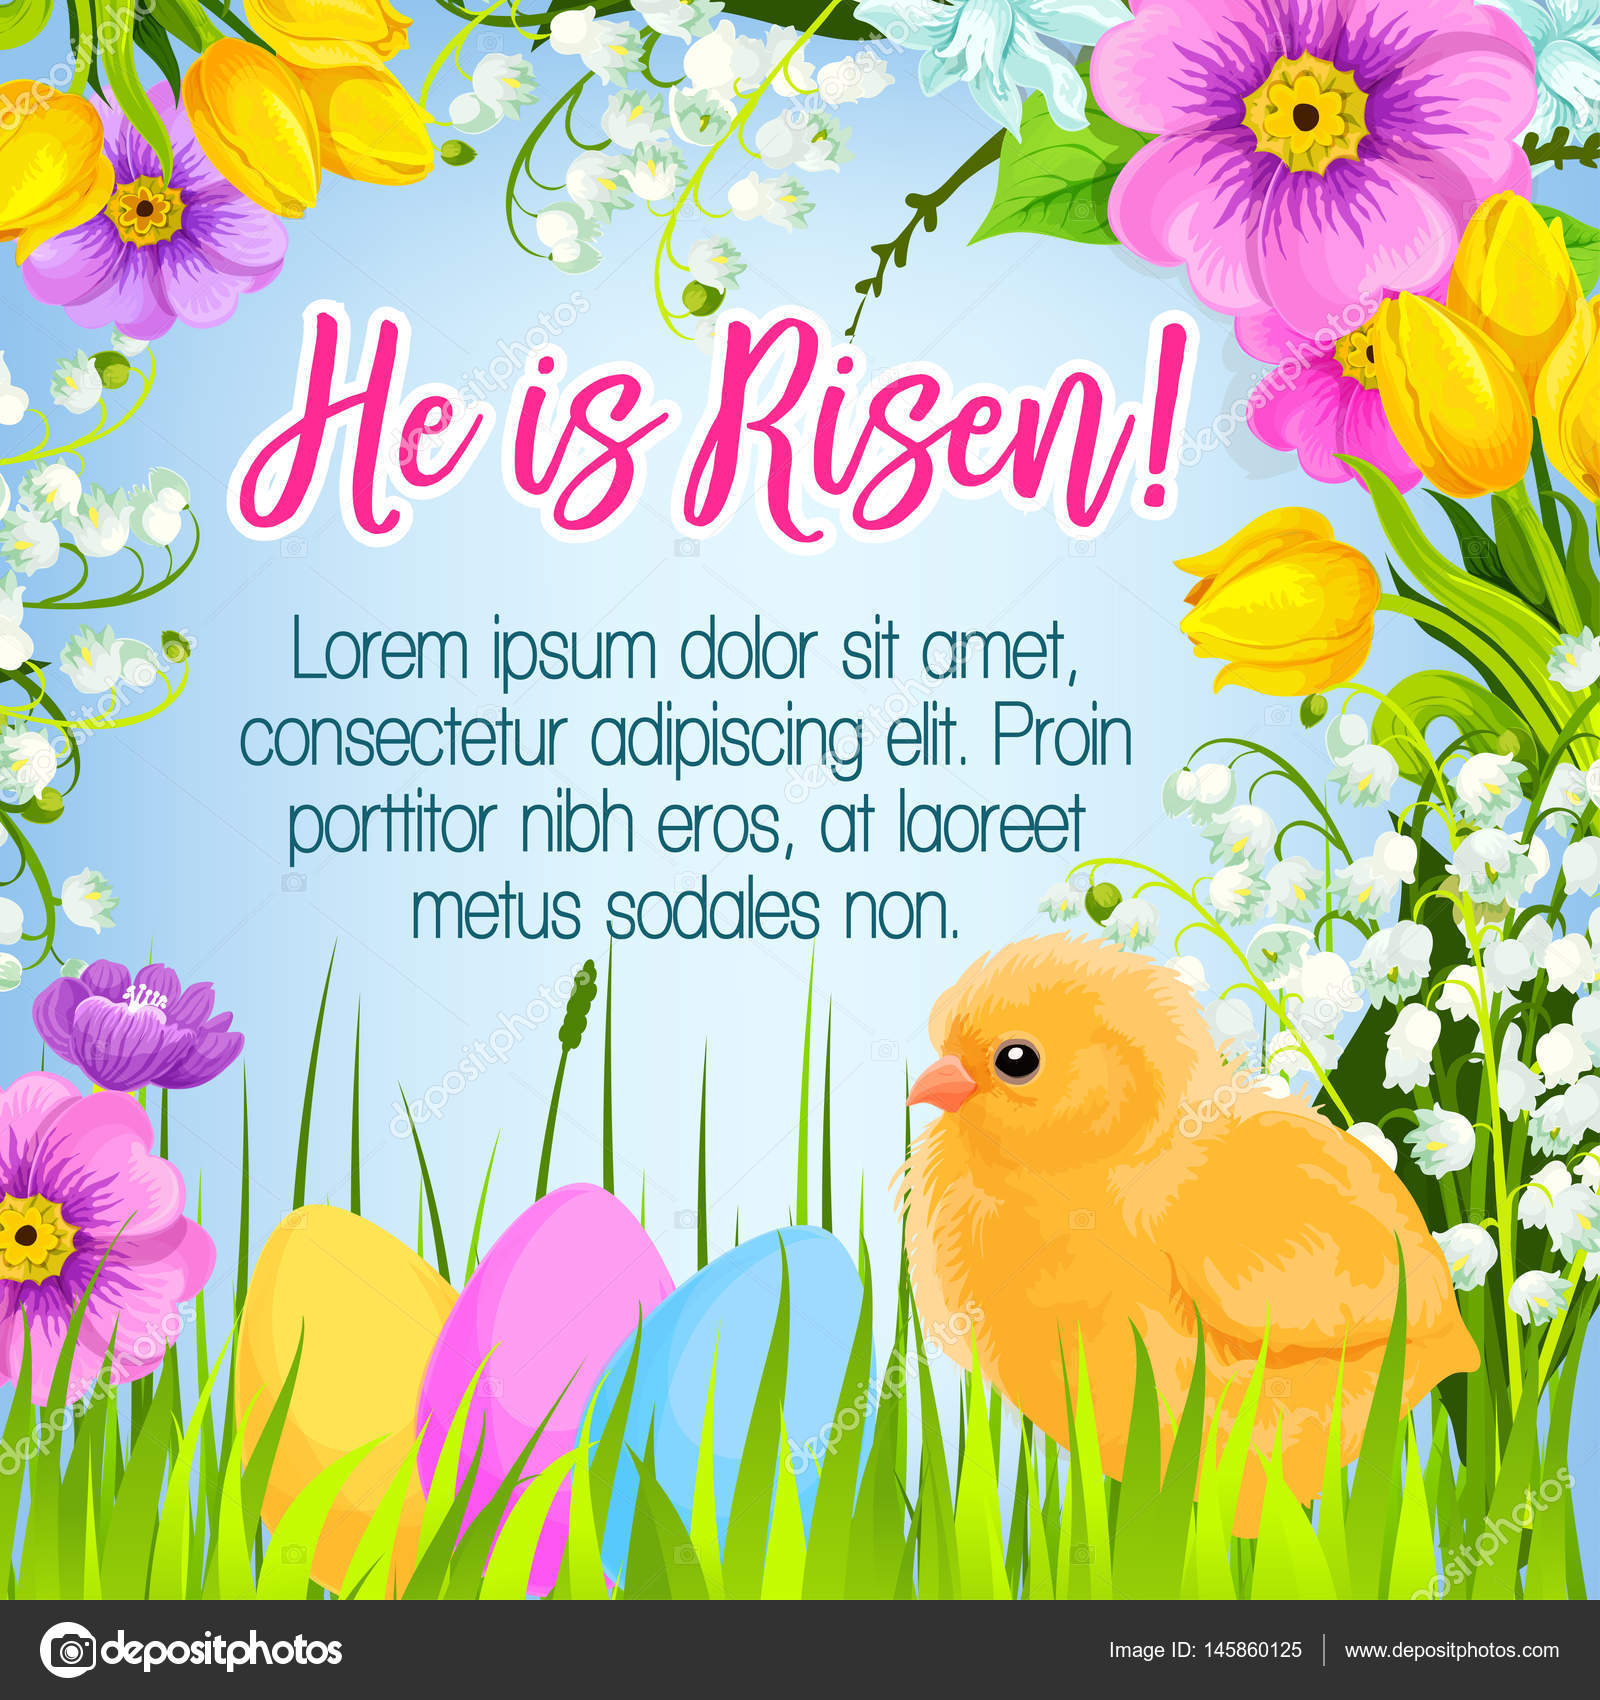 Easter vector poster card paschal eggs greetings stock vector easter poster and he is risen design for paschal greetings vector easter eggs and chick in bunch of spring flowers lily crocuses daffodils and tulips for m4hsunfo